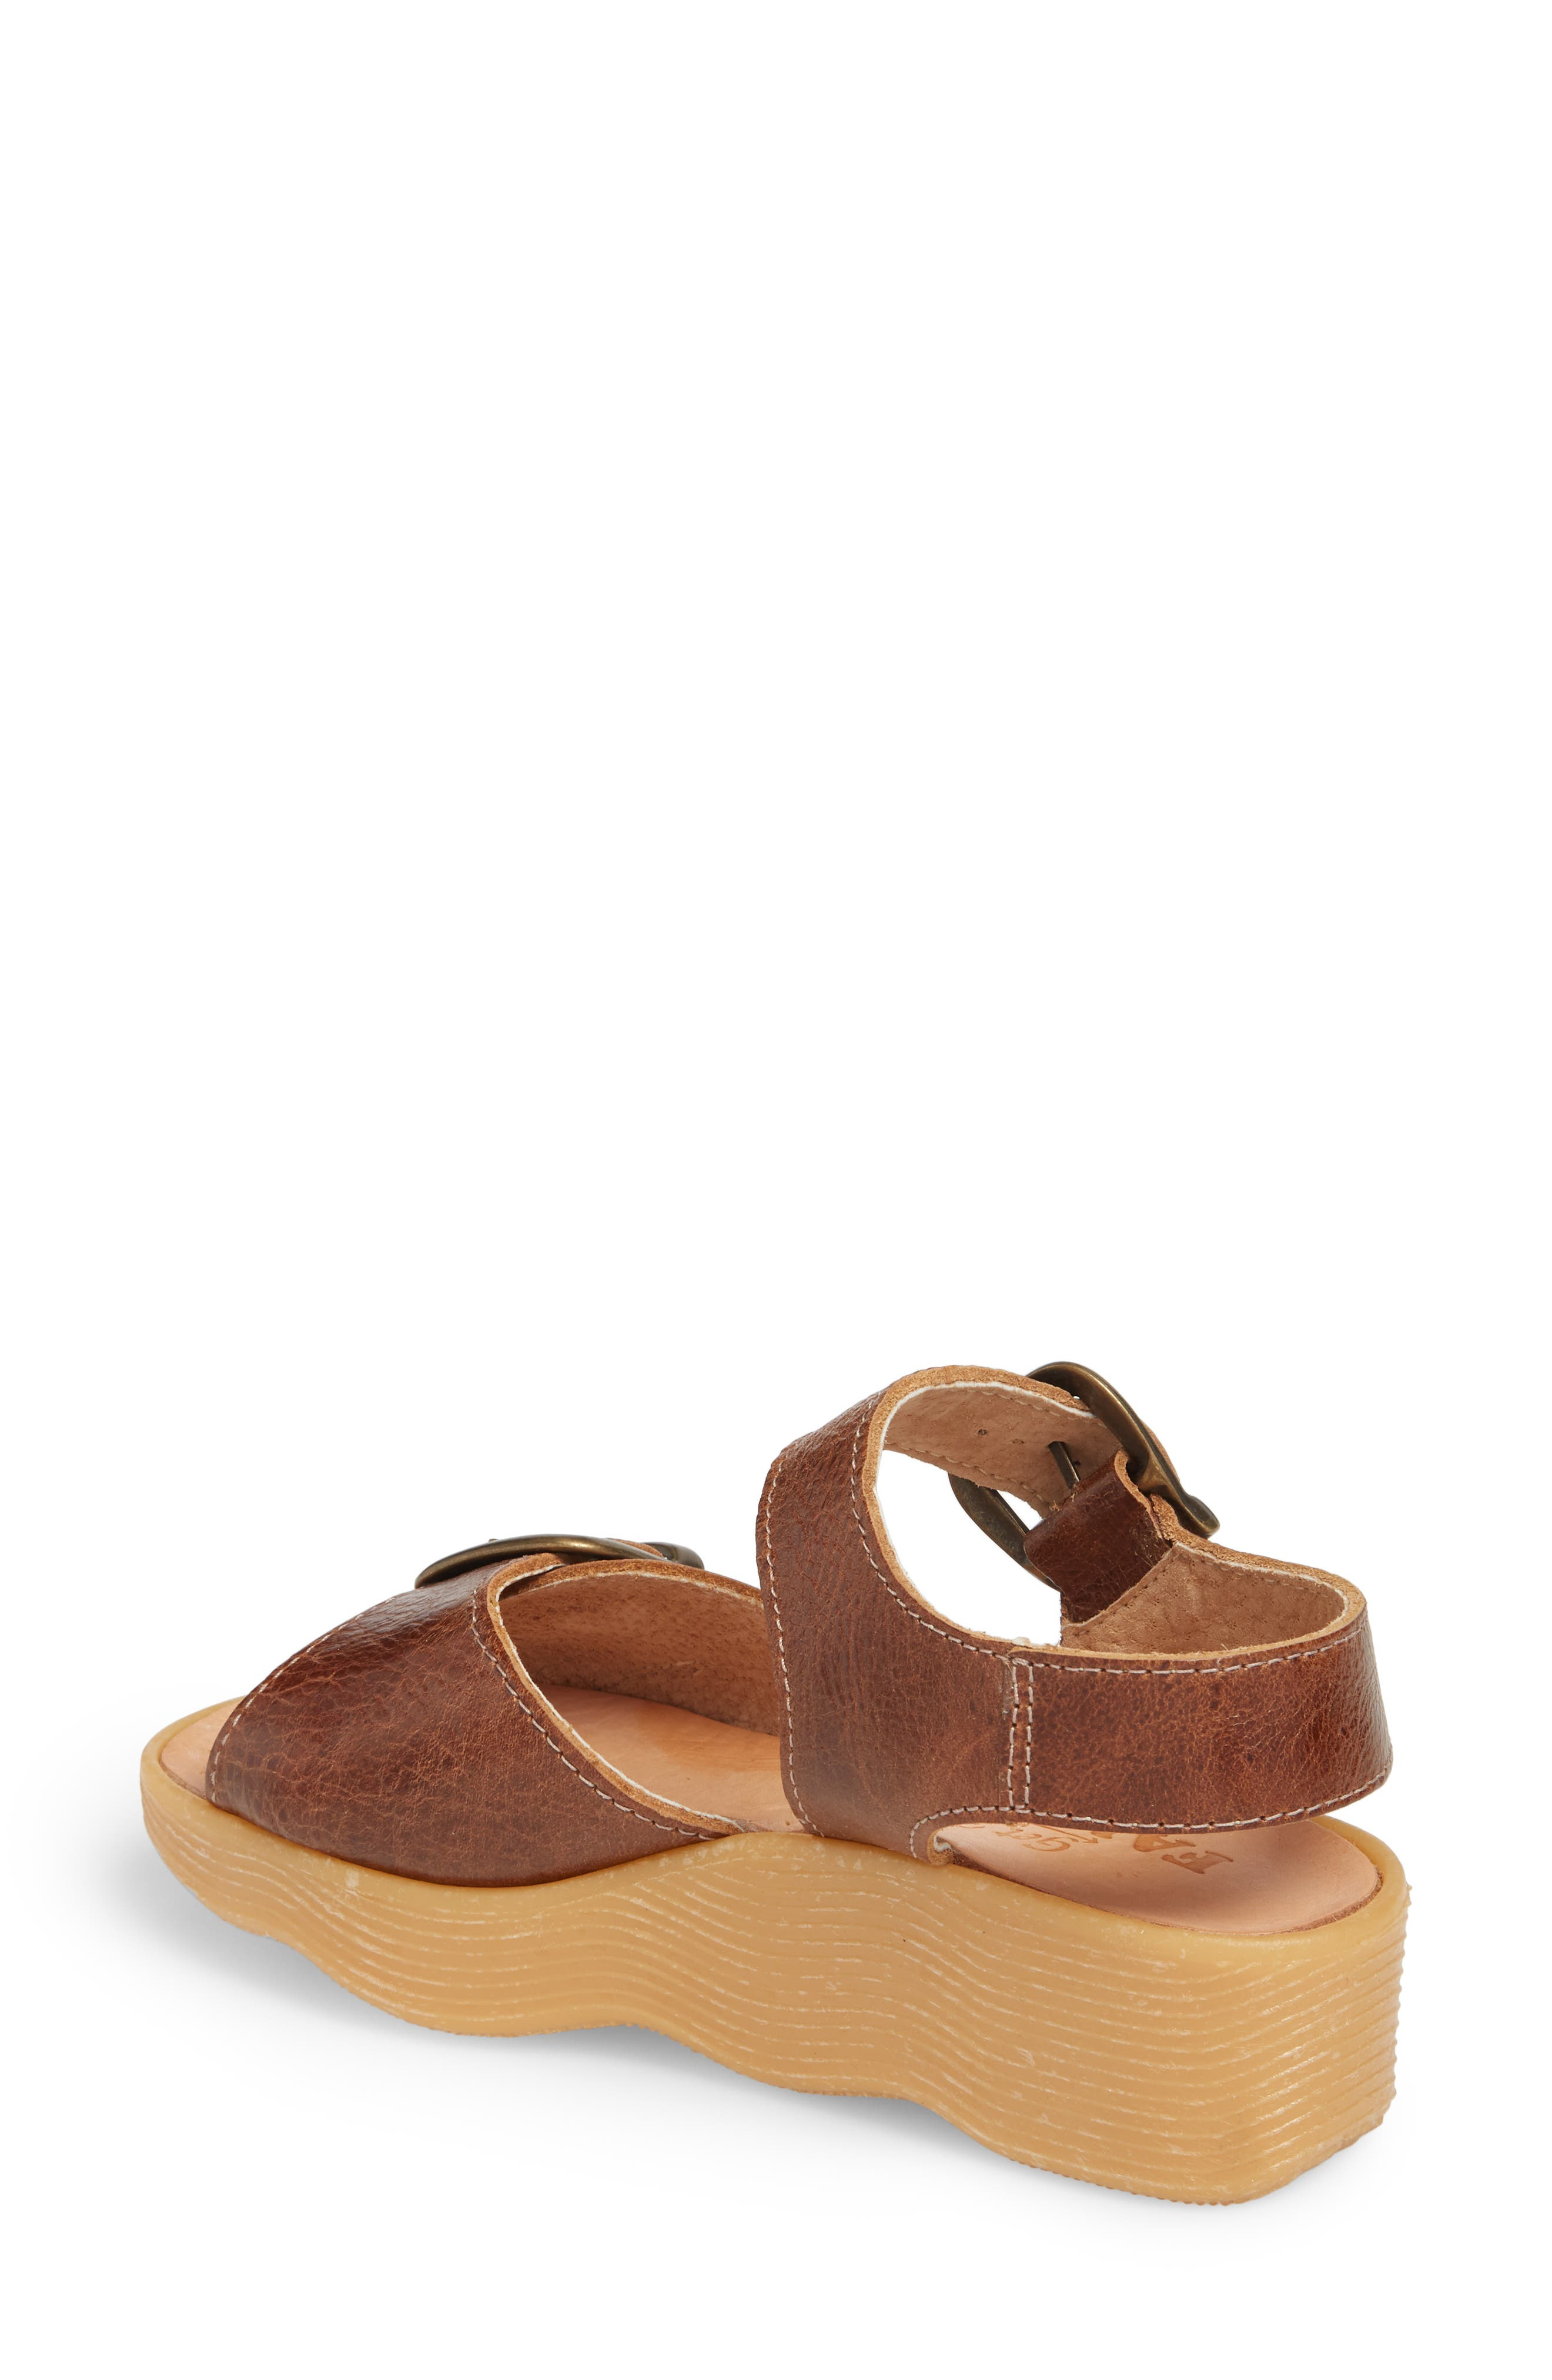 Double Play Platform Sandal,                             Alternate thumbnail 2, color,                             Earth Leather